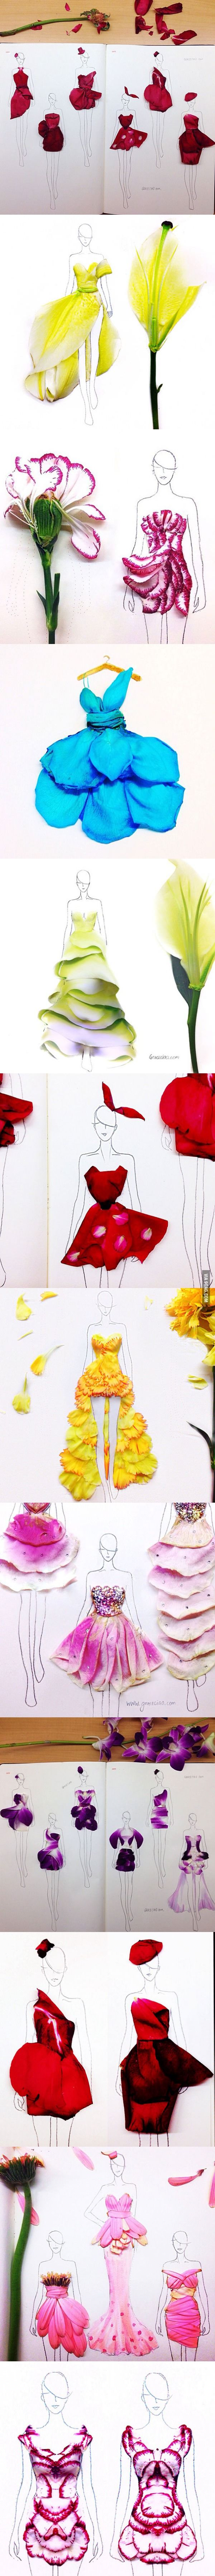 Clever Fashion Illustrations With Real Flower Petals As Clothing. Designer Grace Ciao